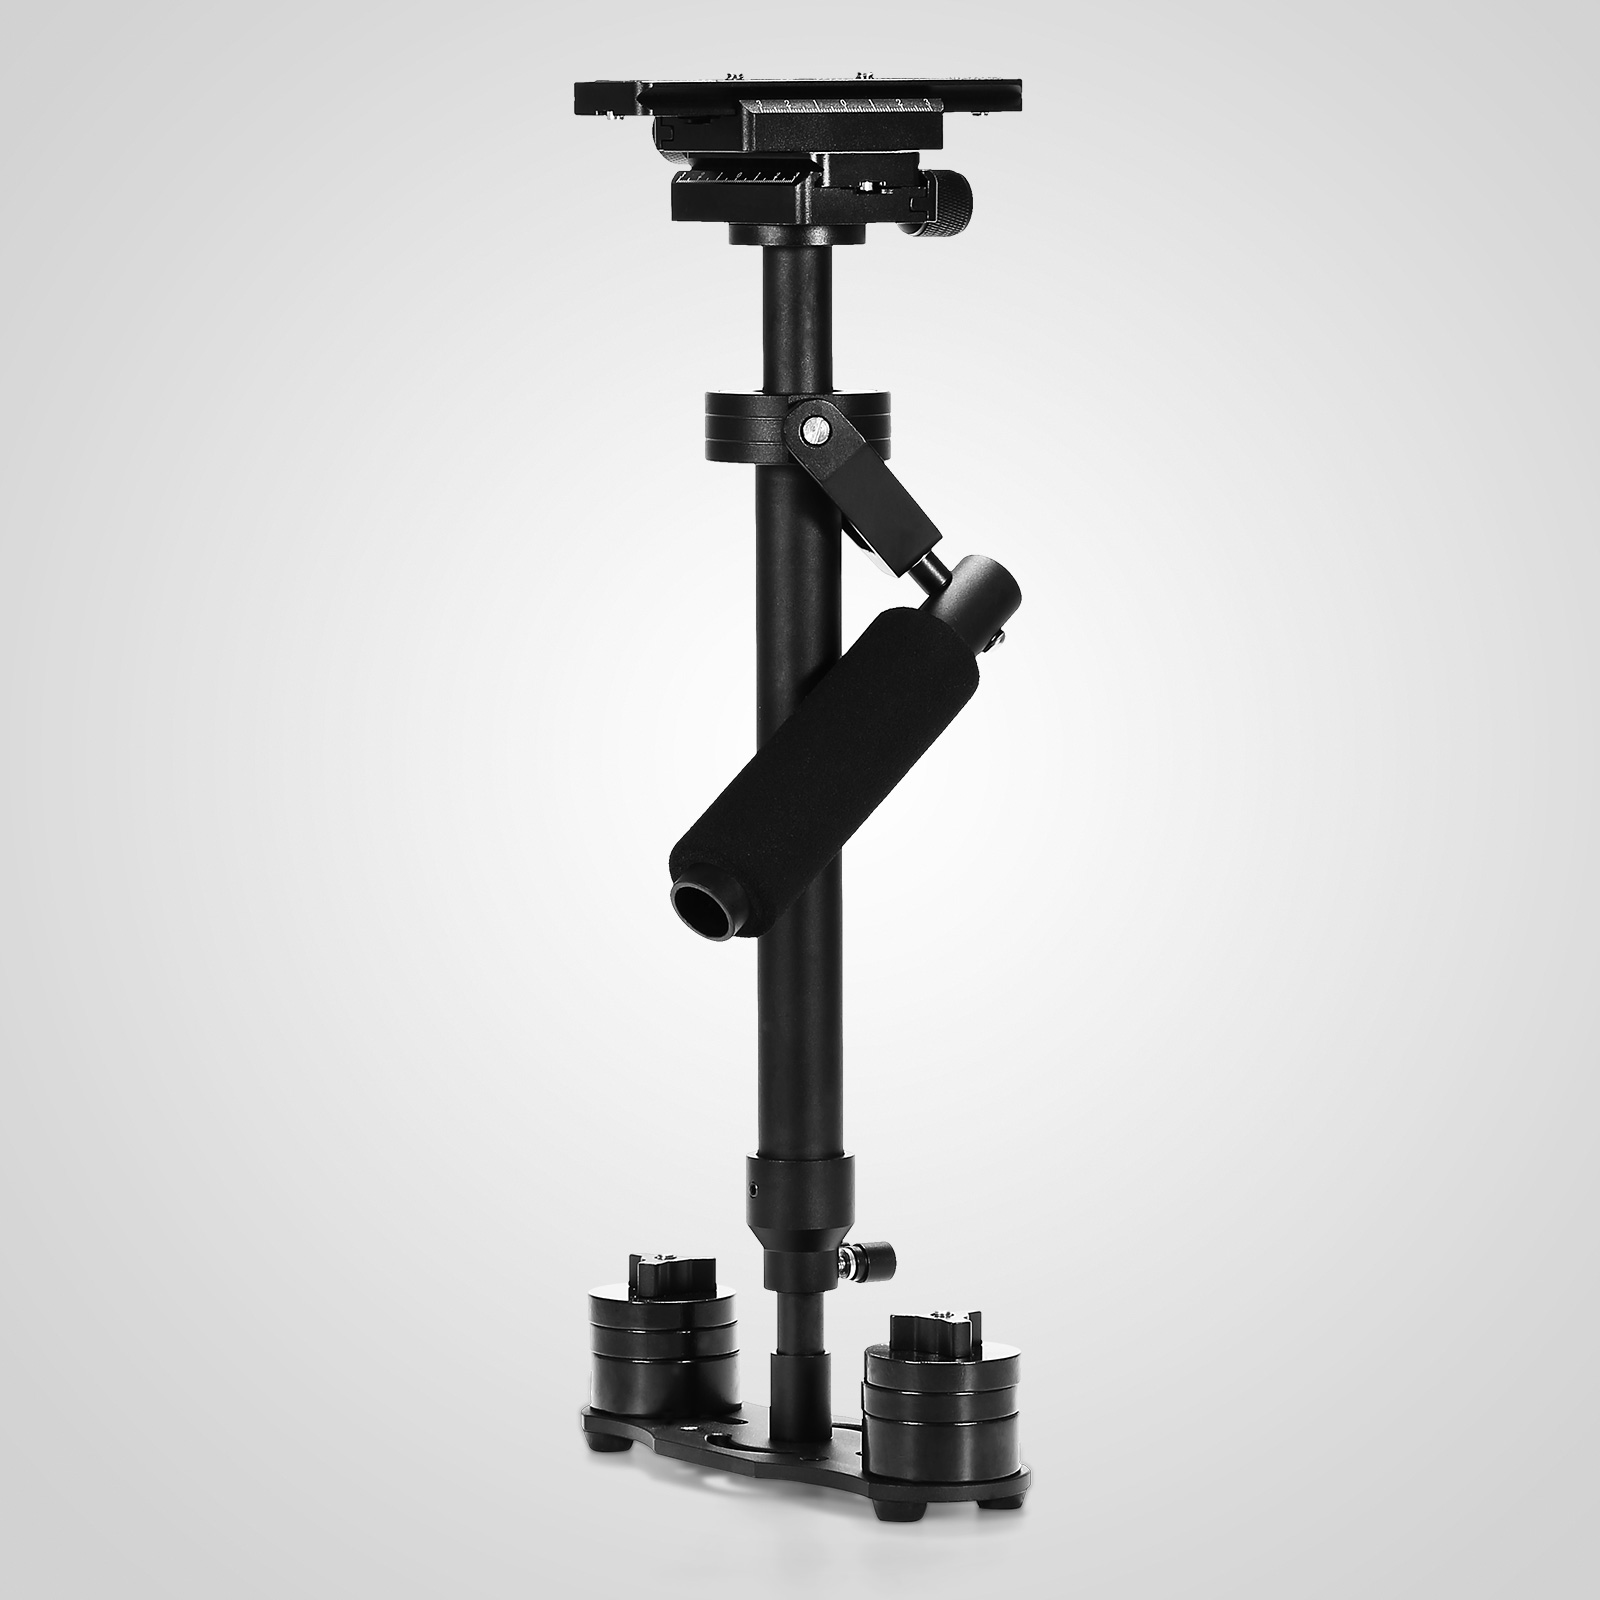 S60T-S60N-Handheld-Steady-Stabilizer-360-For-DSLR-Canon-Camera thumbnail 17